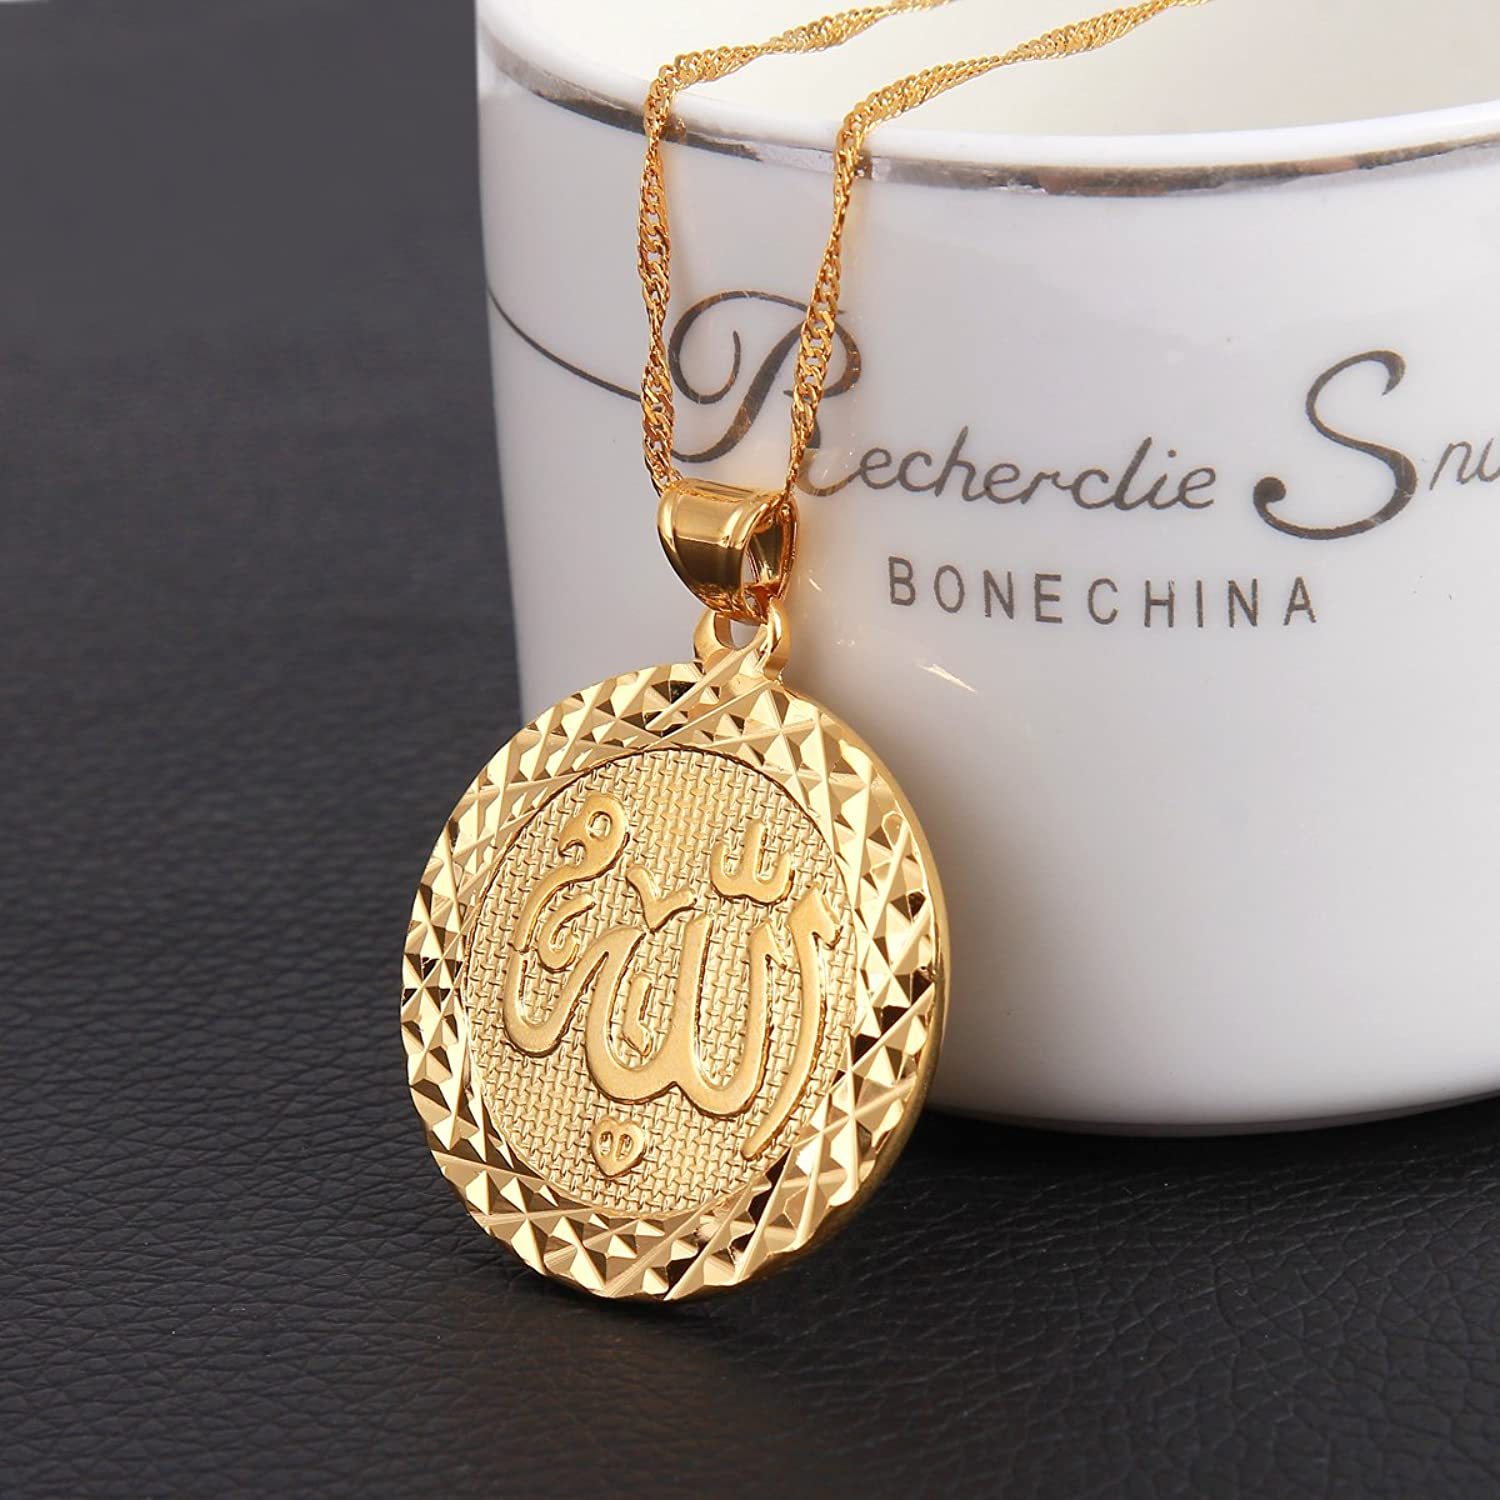 Amazon men allah gold pendant necklace link chain middle east amazon men allah gold pendant necklace link chain middle east charm islam round pendant jewelry mozeypictures Choice Image